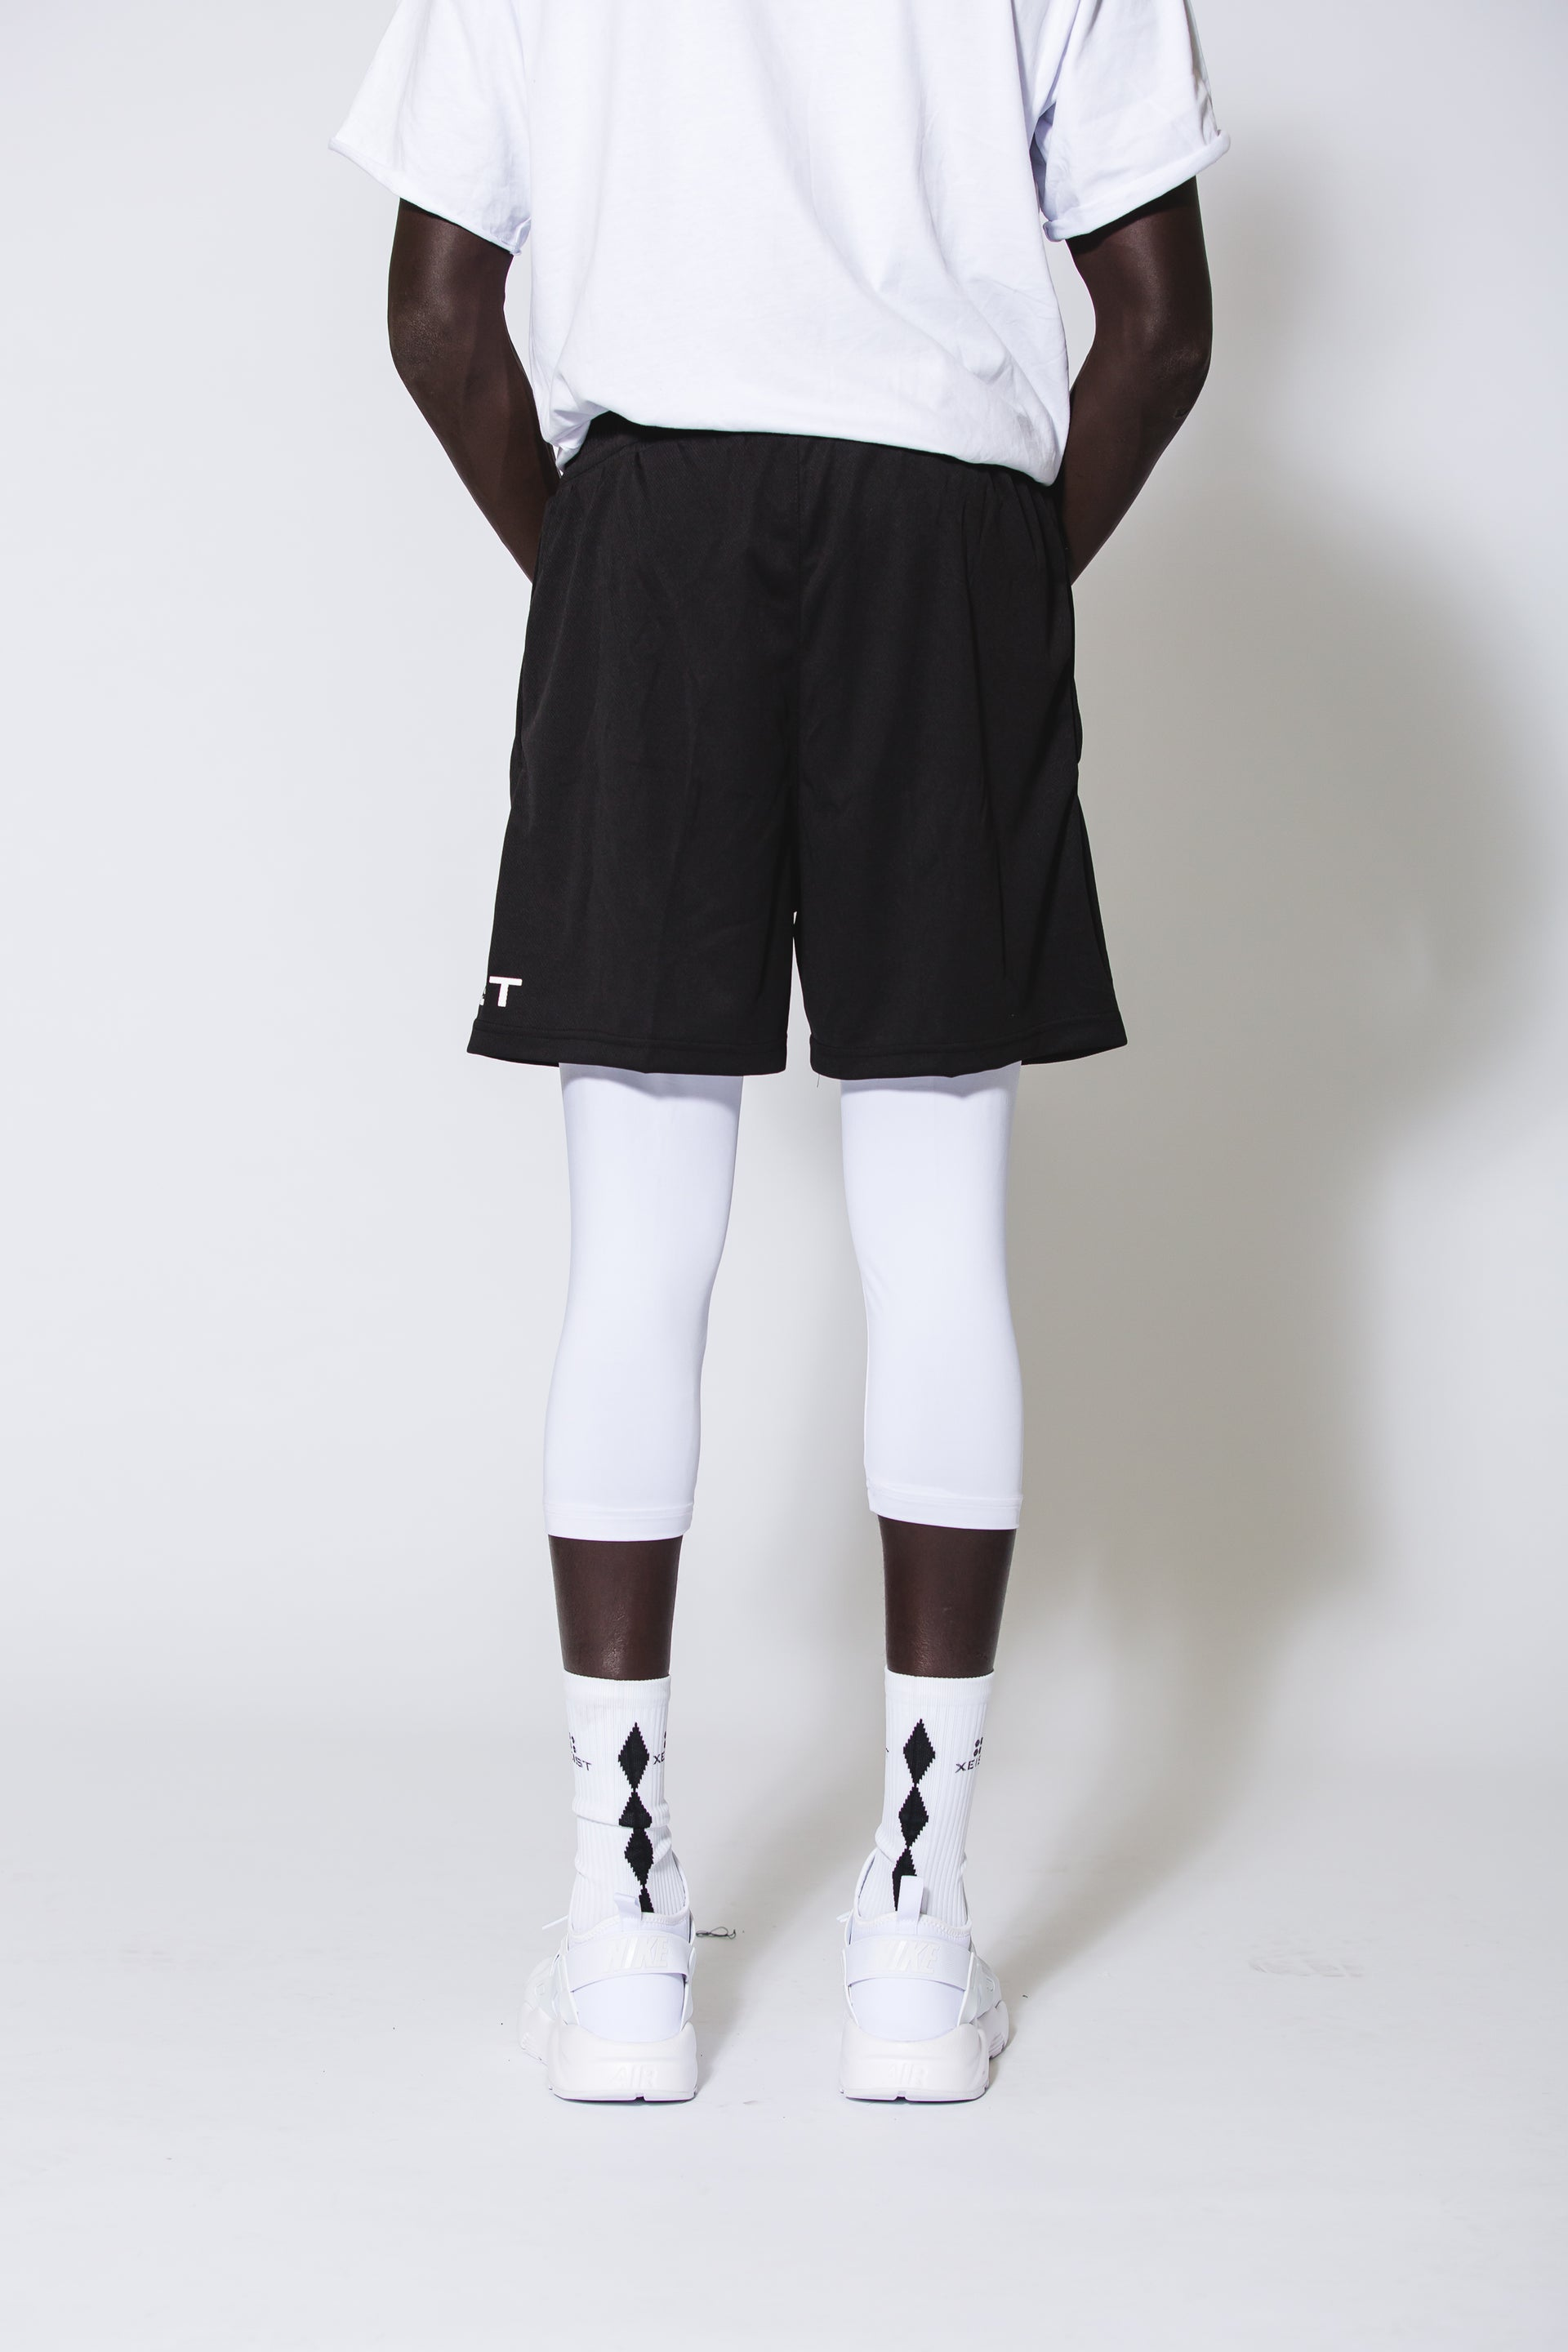 Limitless Shorts with Built in White Compression - Xeist